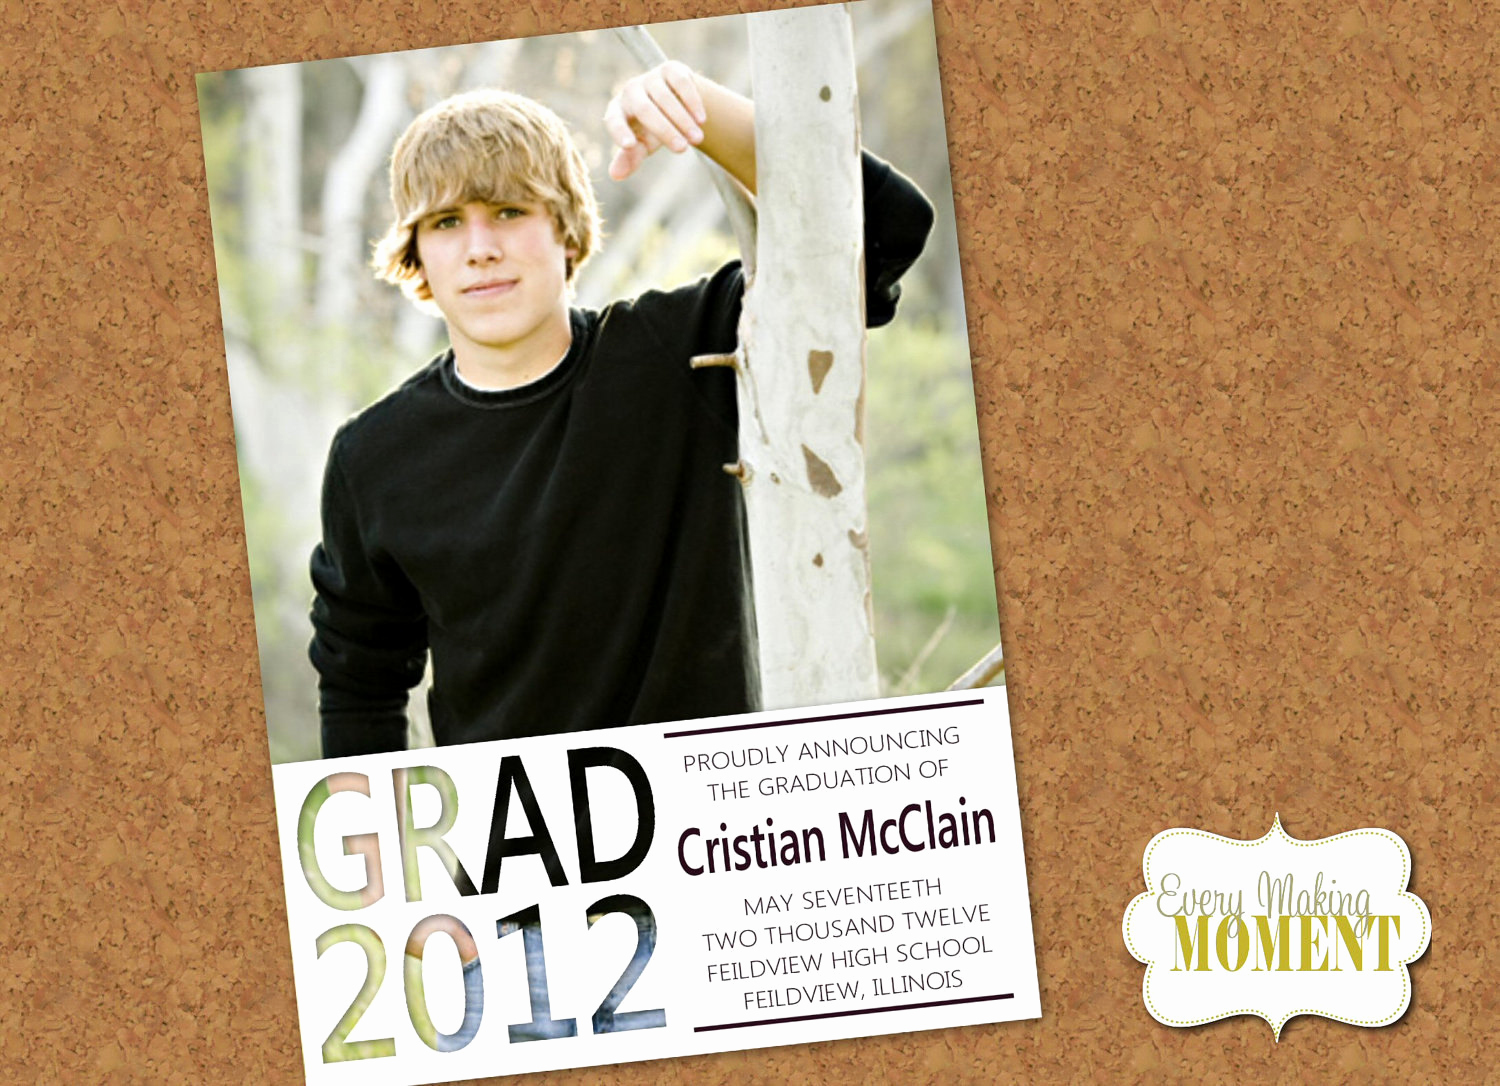 High School Graduation Invitation Fresh Graduation Announcement High School Graduation Announcement